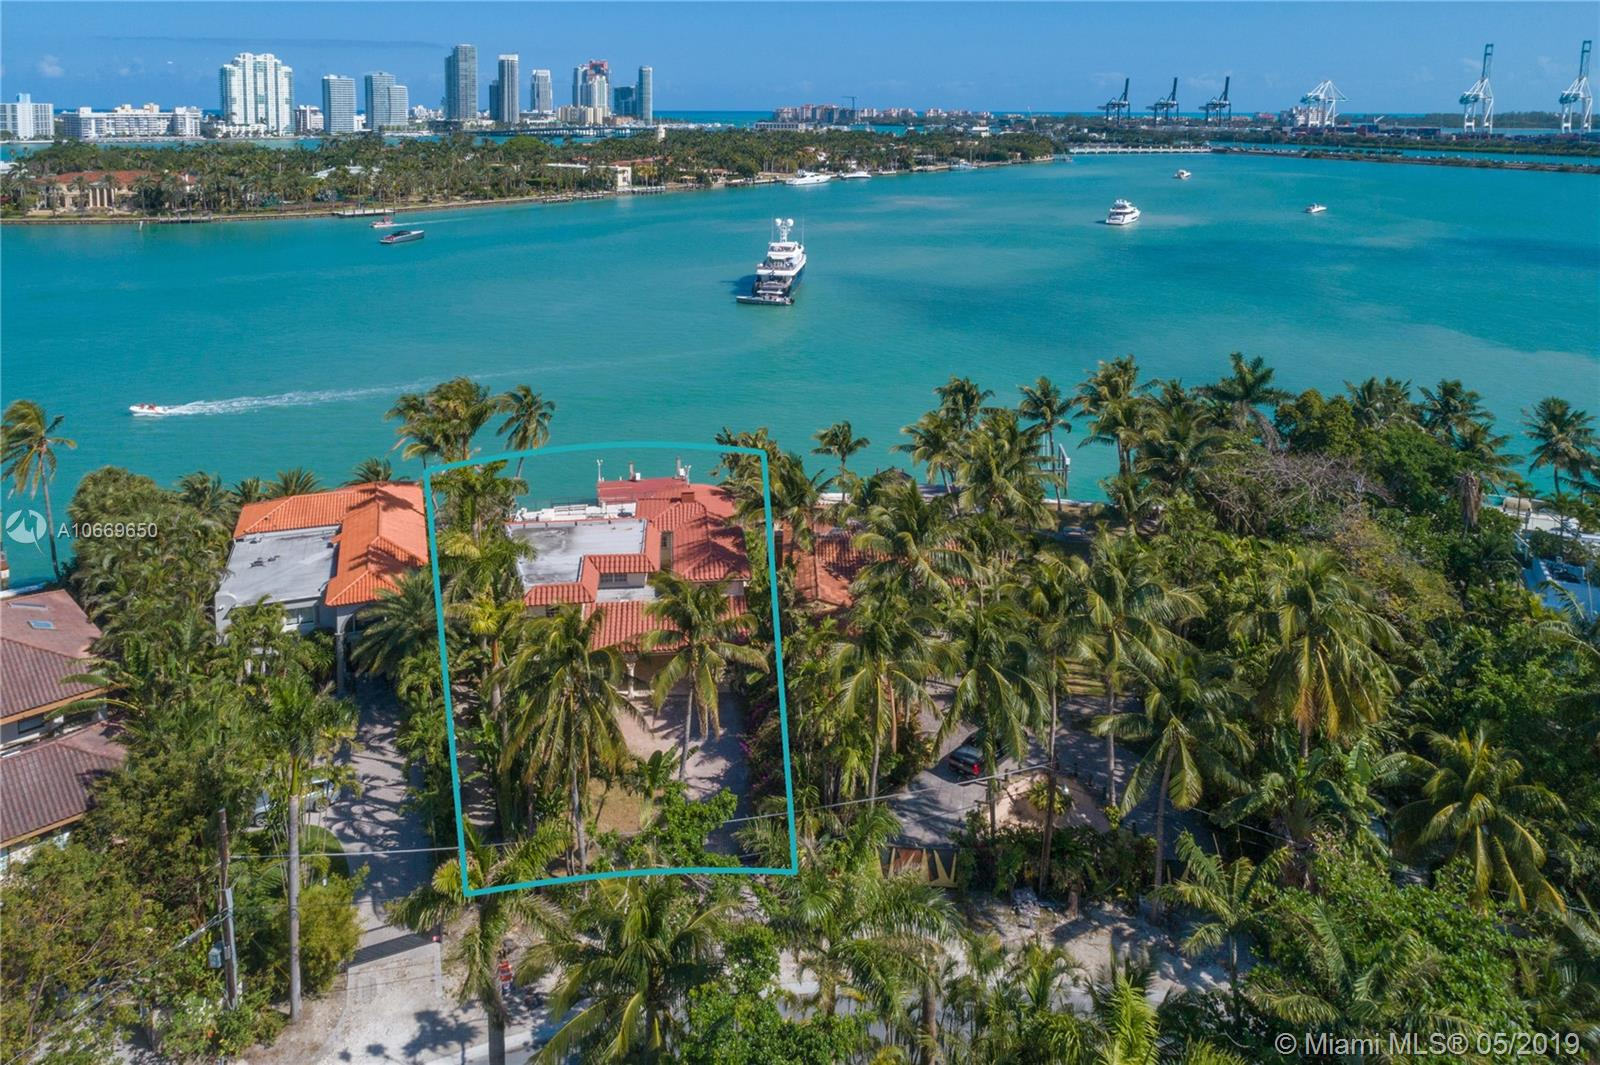 Take advantage of this rare development opportunity on guard gated Hibiscus Island. This lot features 71 feet of water frontage and breathtaking panoramic open water views. Enjoy the best of both worlds within just 5 minutes of Miami Beach or Downtown Miami. Adjacent property, 6 S Hibiscus Drive, also available for purchase. For knockdown value; property contains building that currently requires substantial renovation to get new certificate of occupancy.